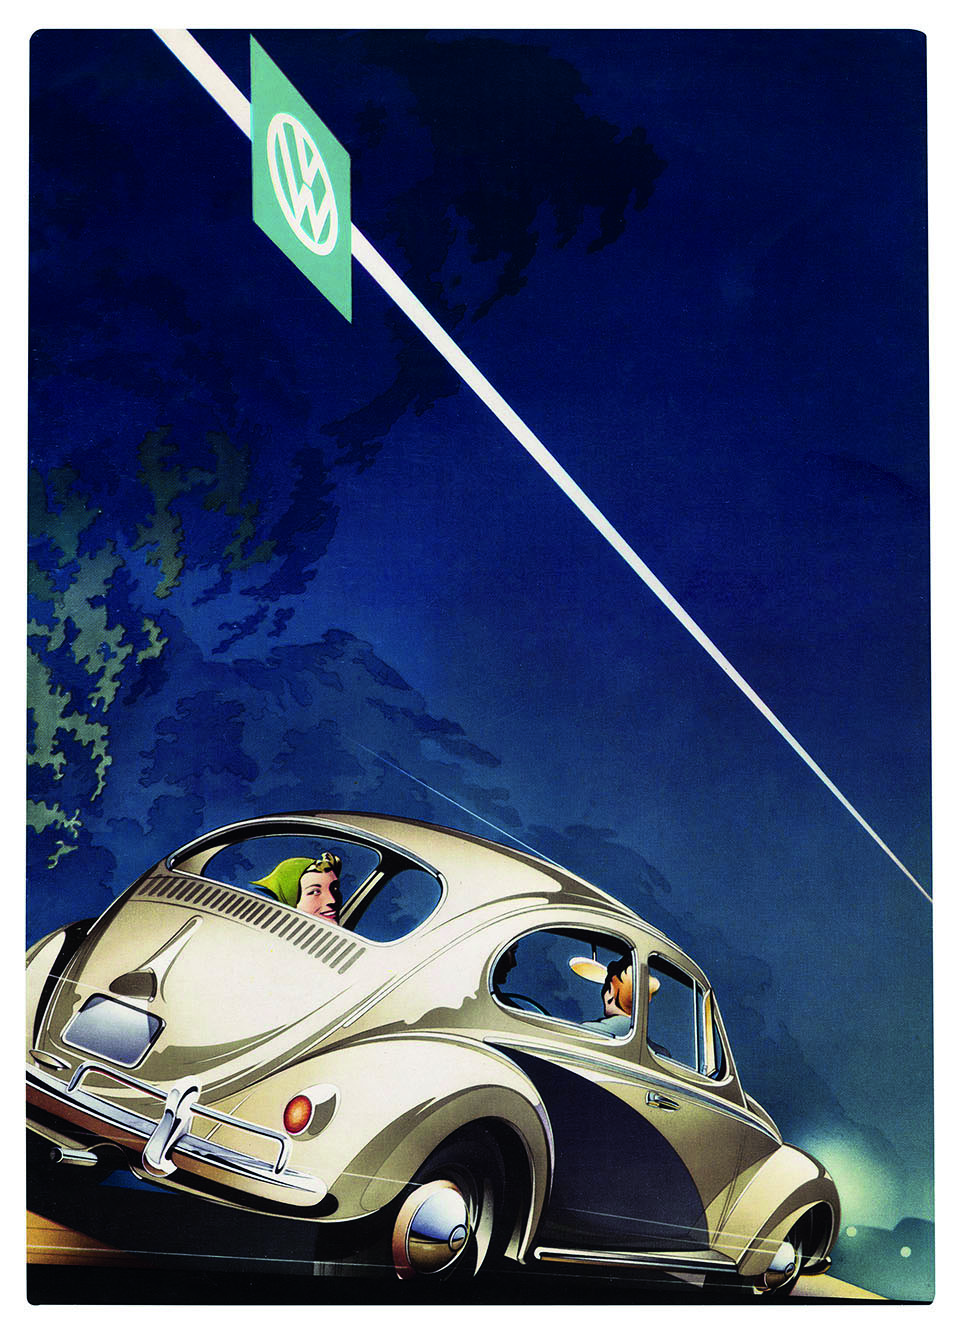 Volkswagen, 1957 (Courtesy of Jim Cherry)